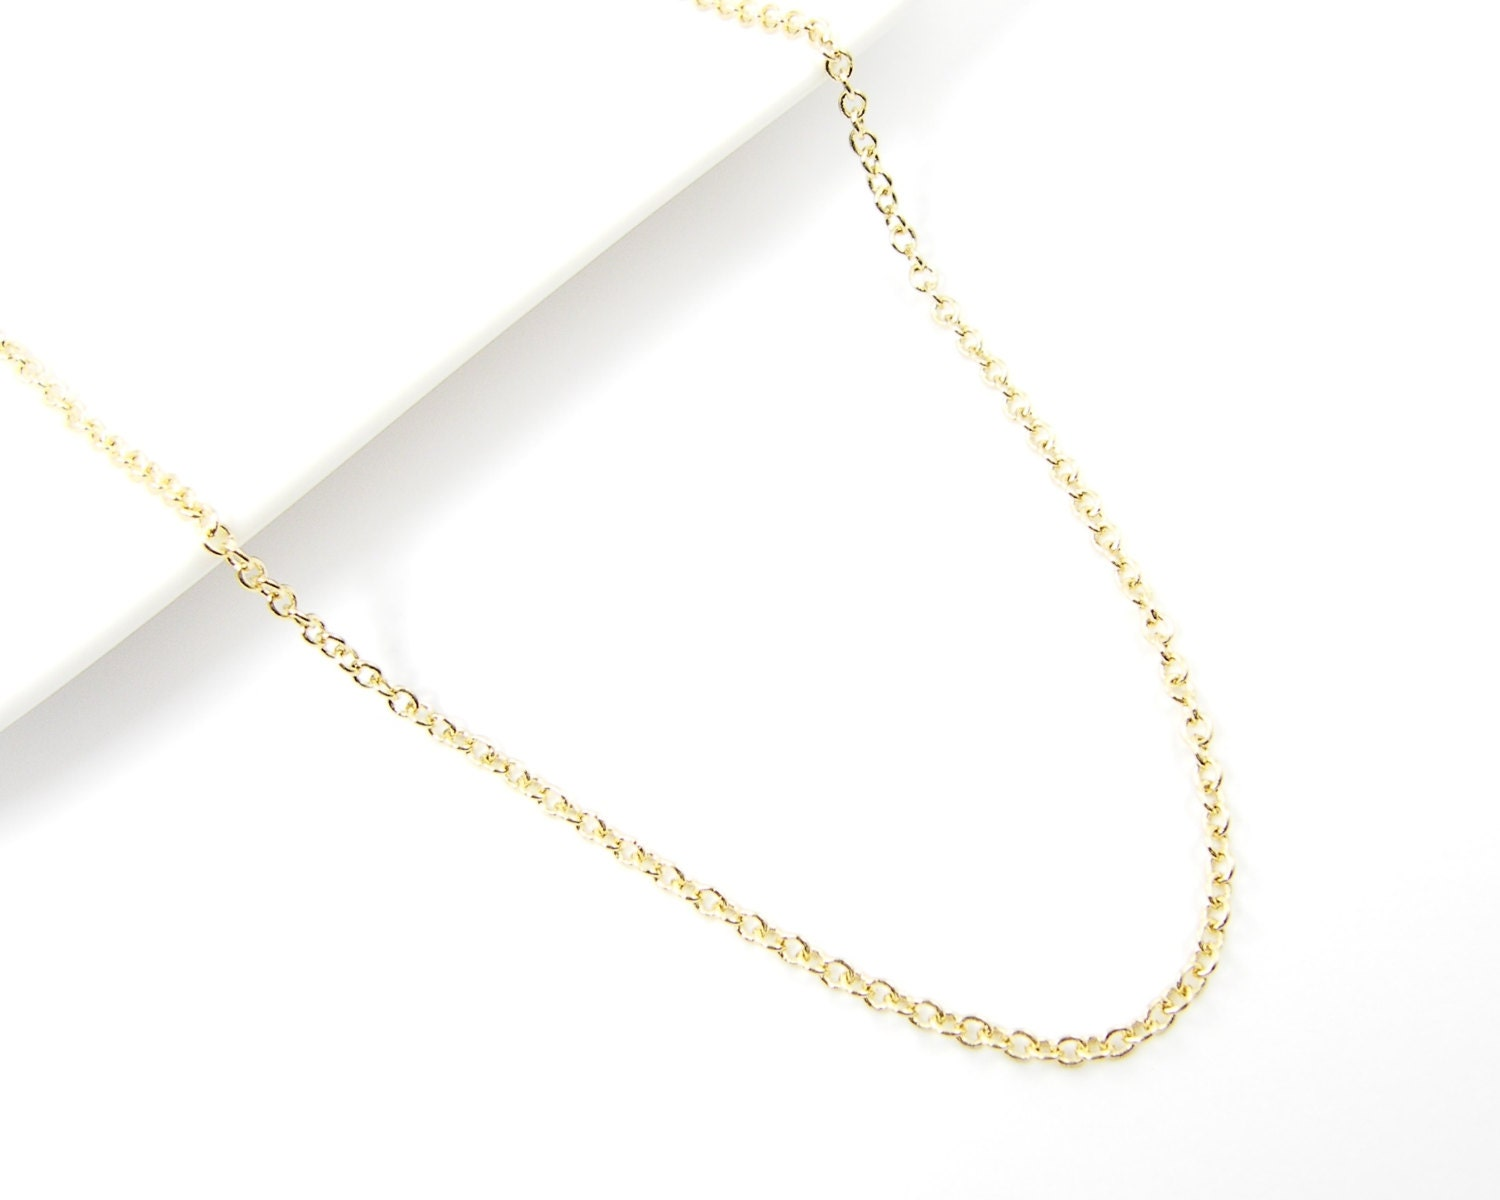 Gold Necklace Chain 30 Inch